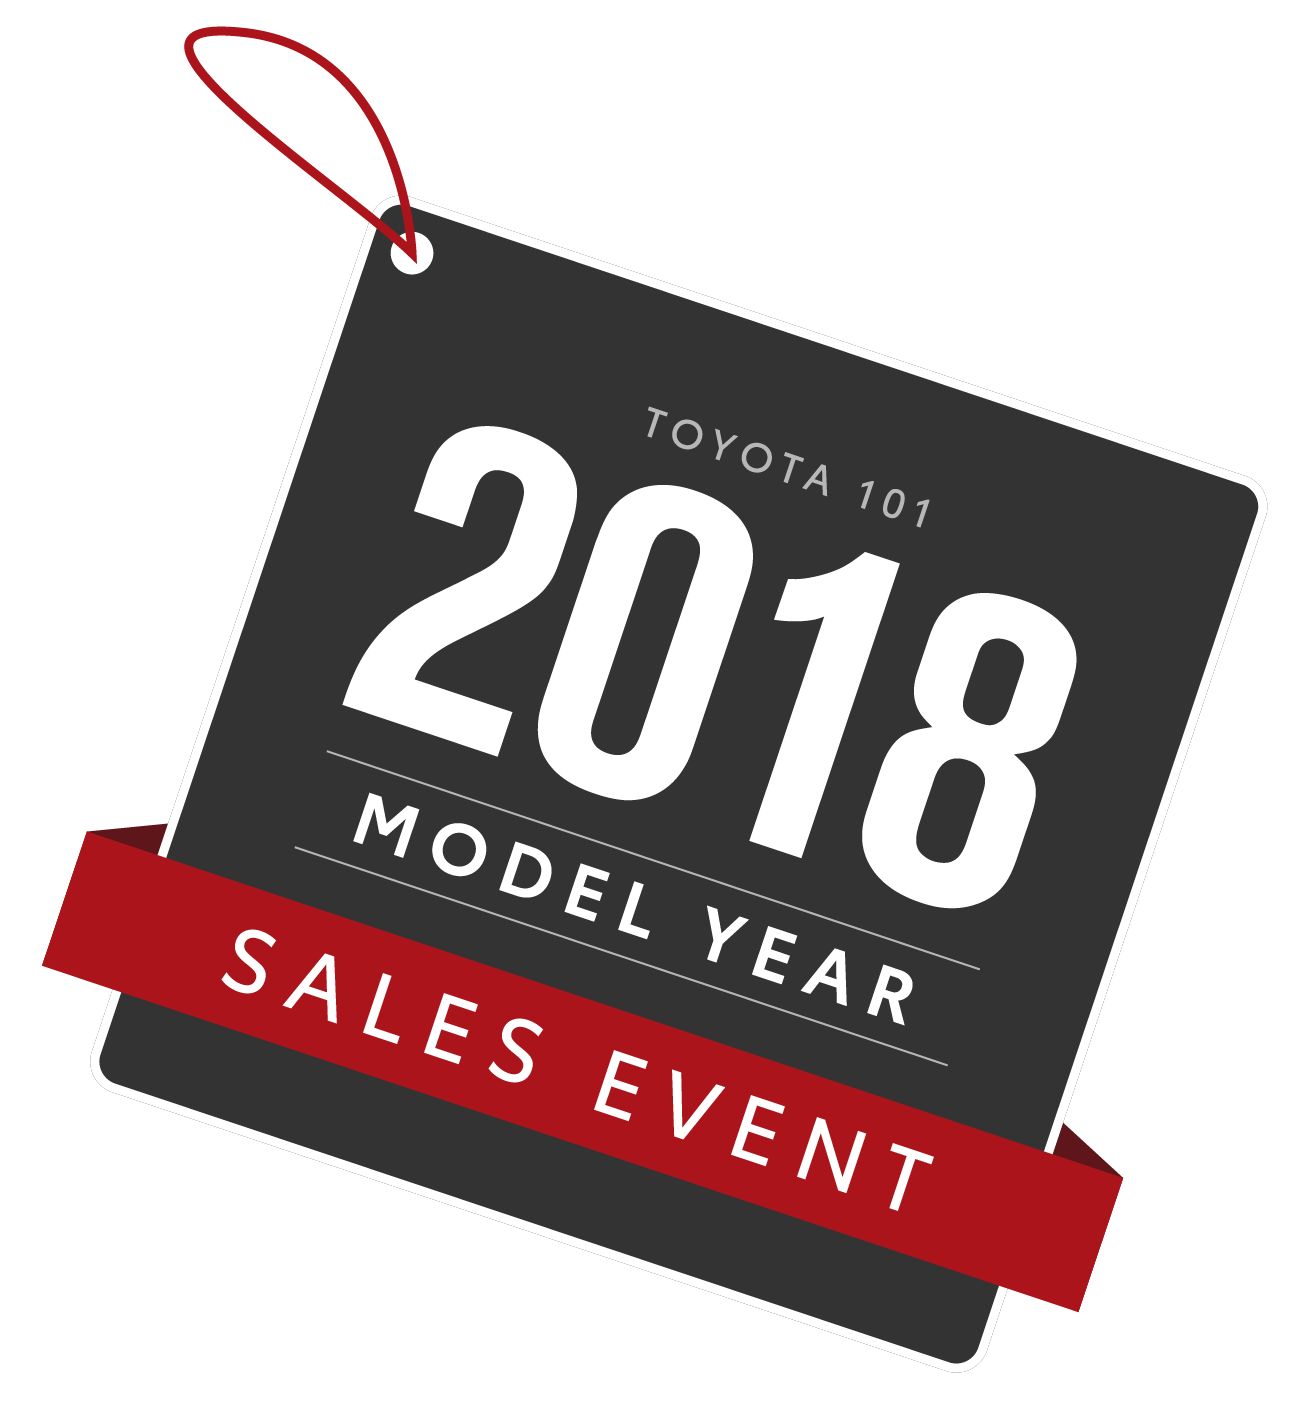 Toyota 101's - 2018 Model Year Sales Event